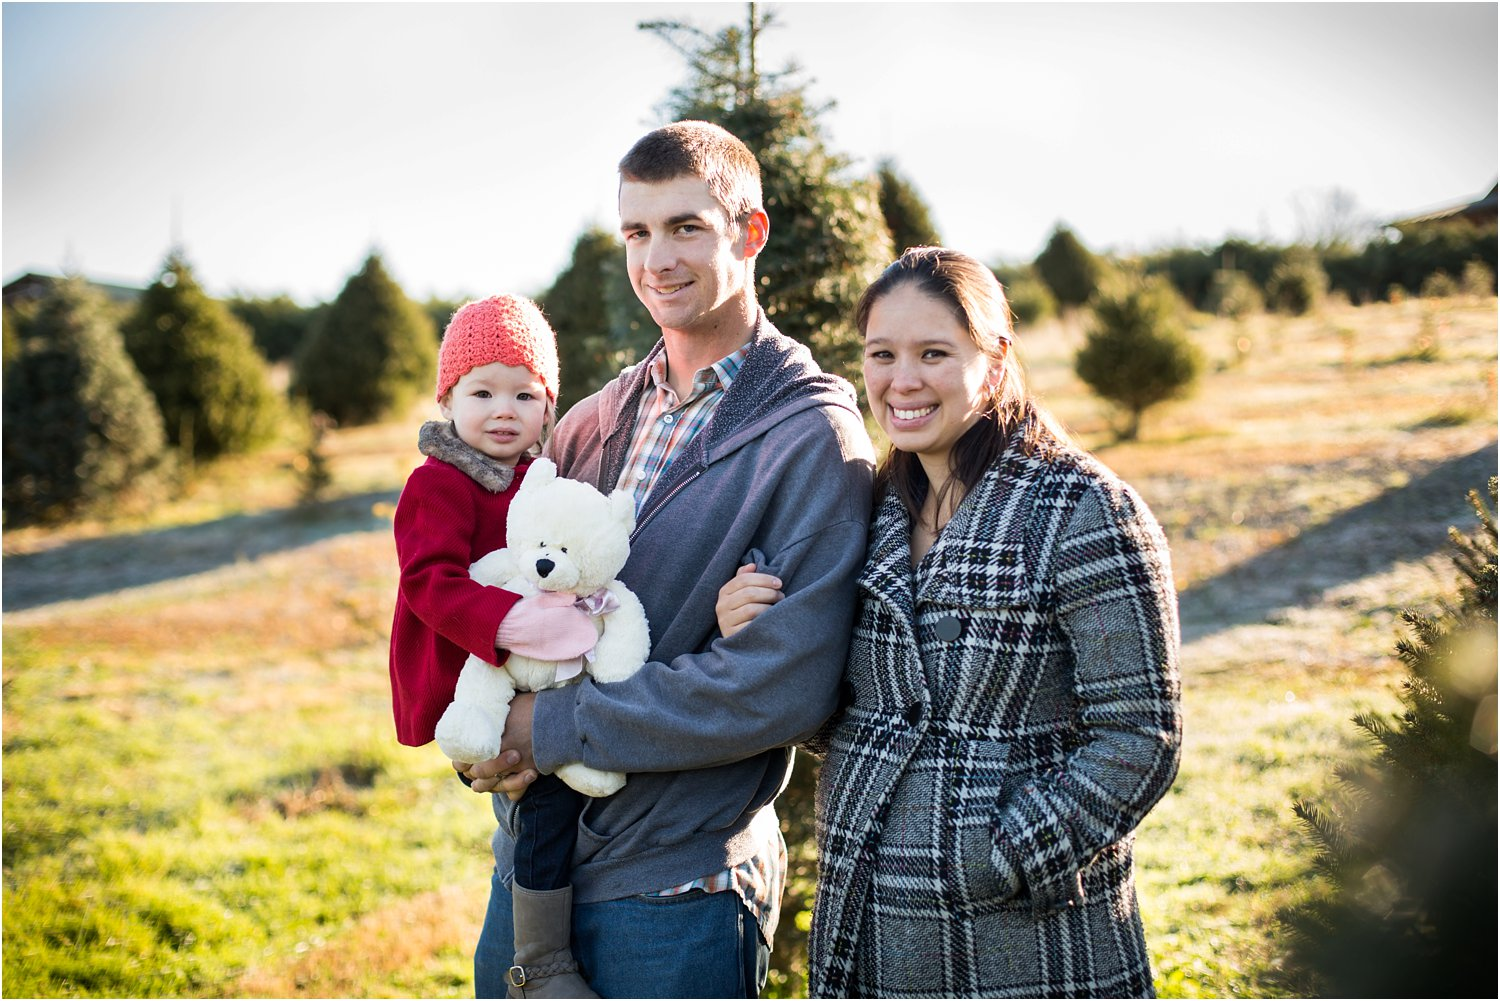 Moose_Apple_Chrismas_Tree_Farm_Family_Portraits_0001.jpg